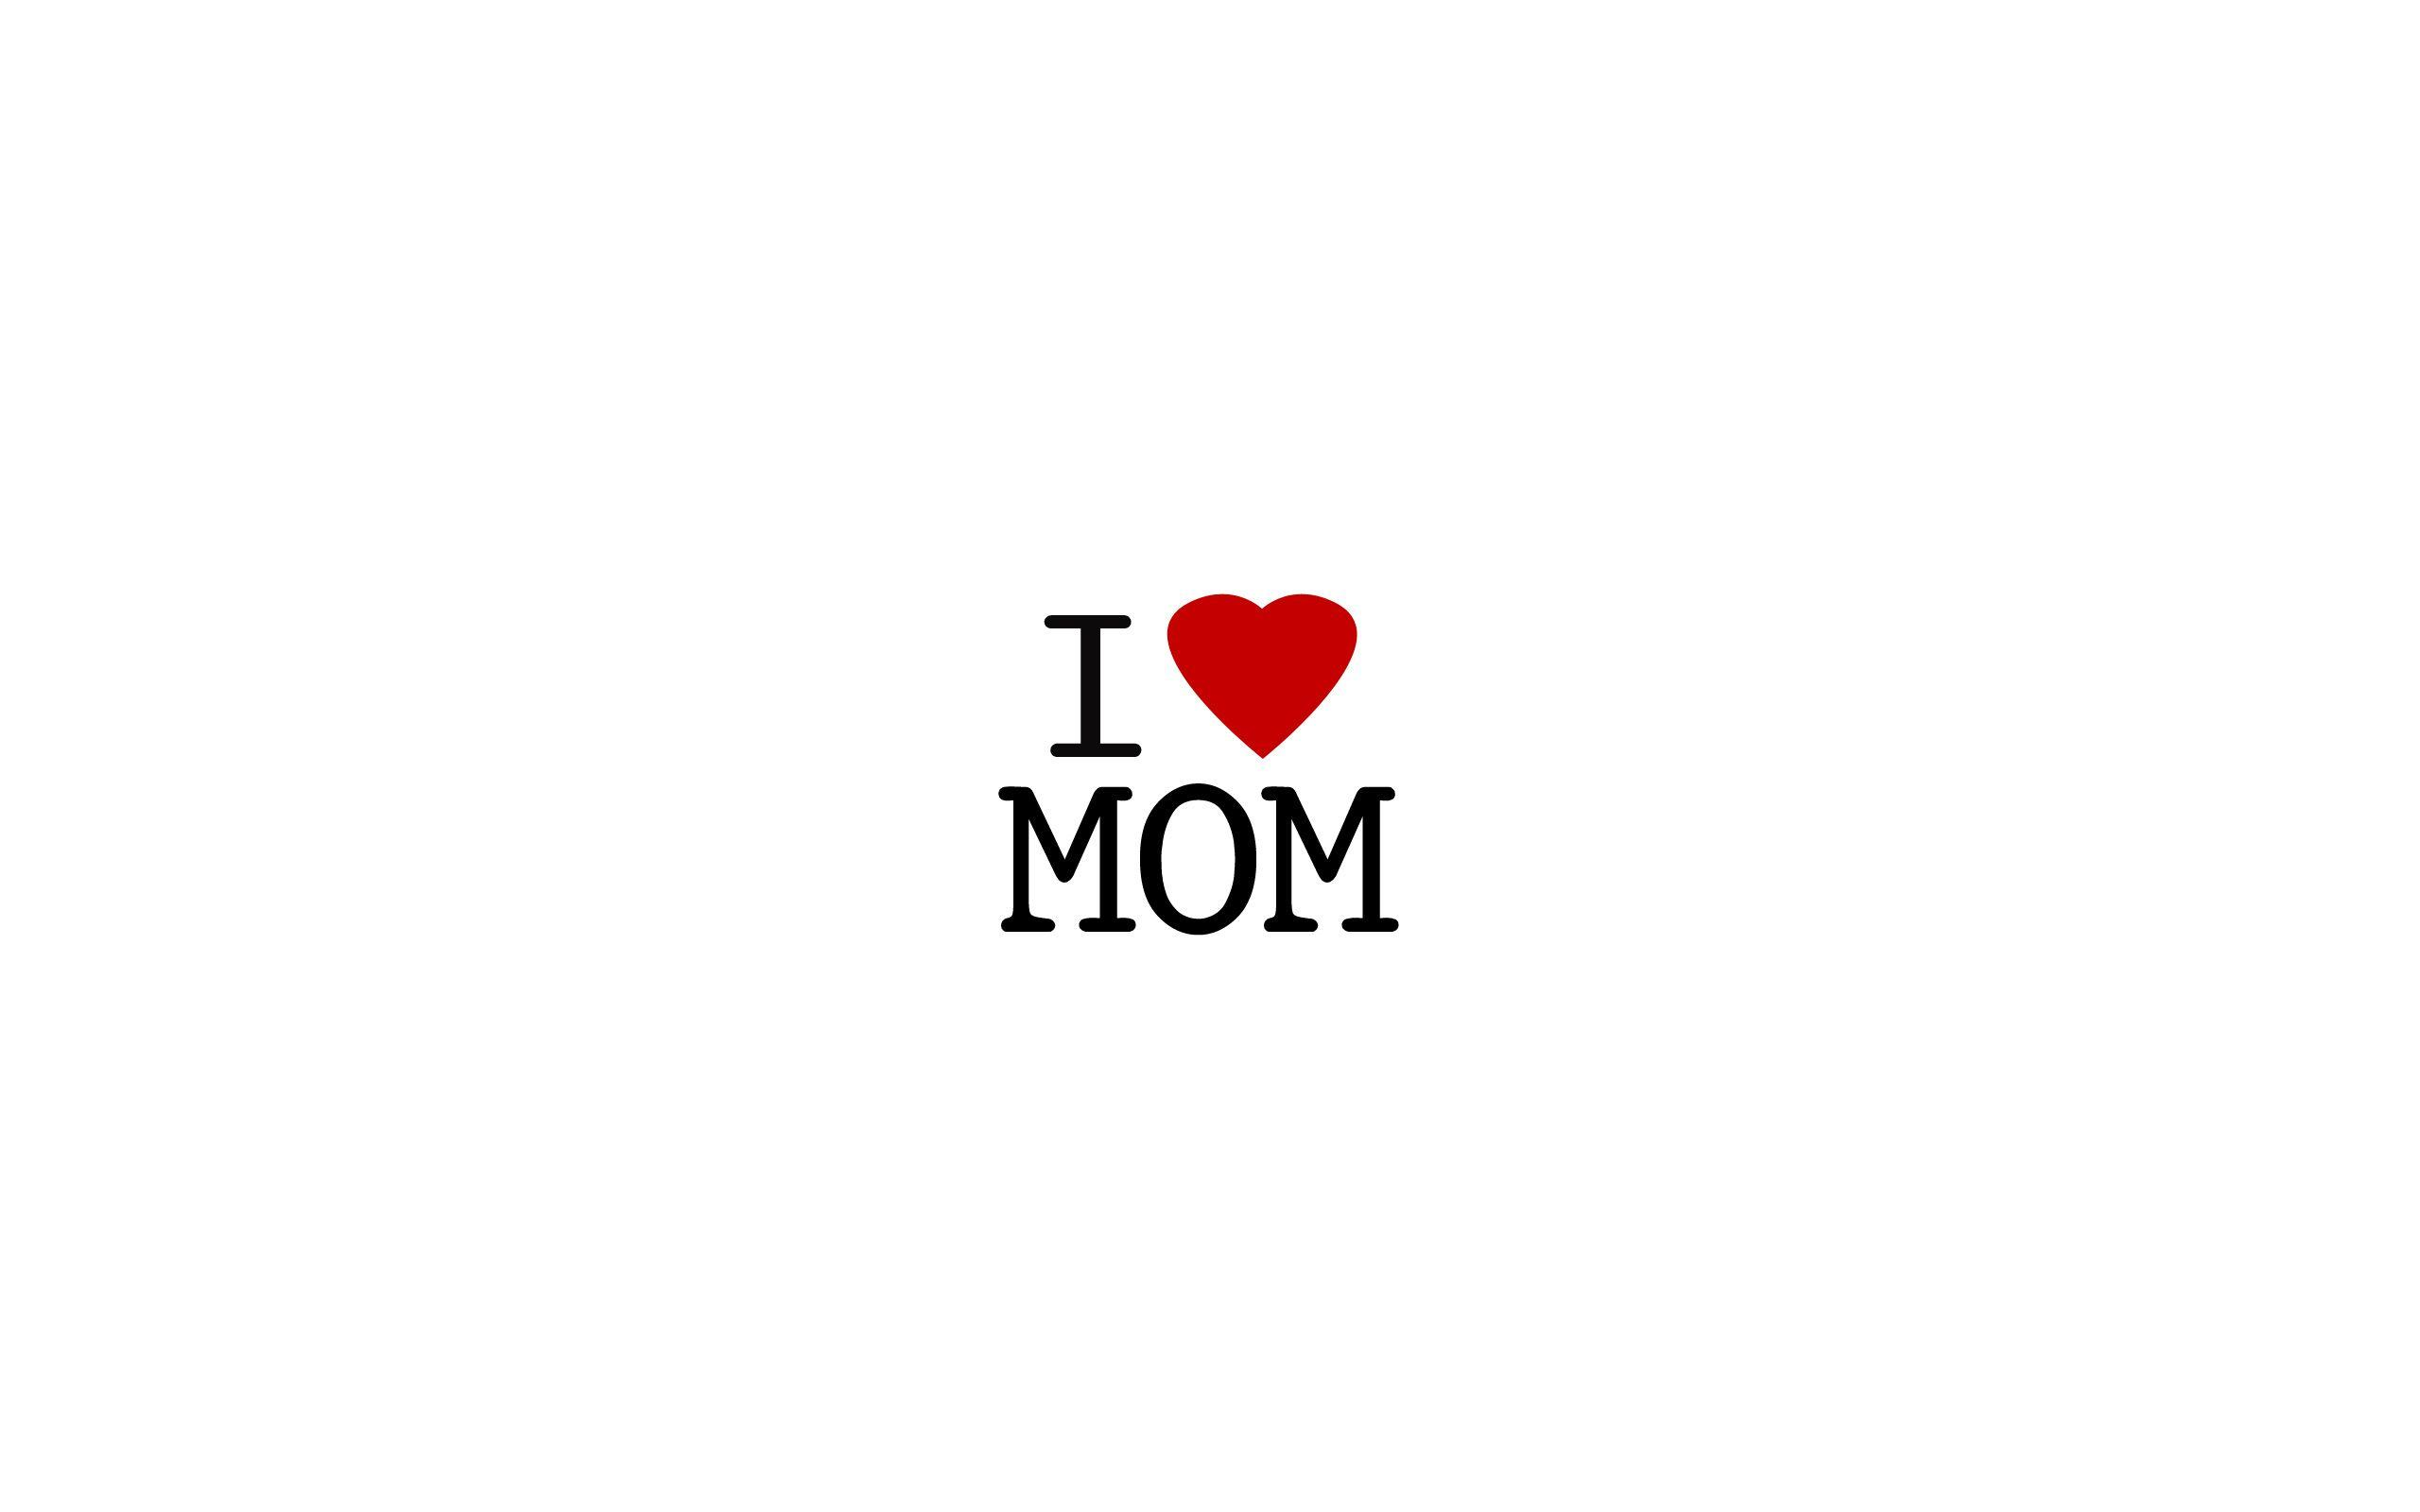 Wallpaper I Love You Mom : I Love You Mom Wallpapers - Wallpaper cave